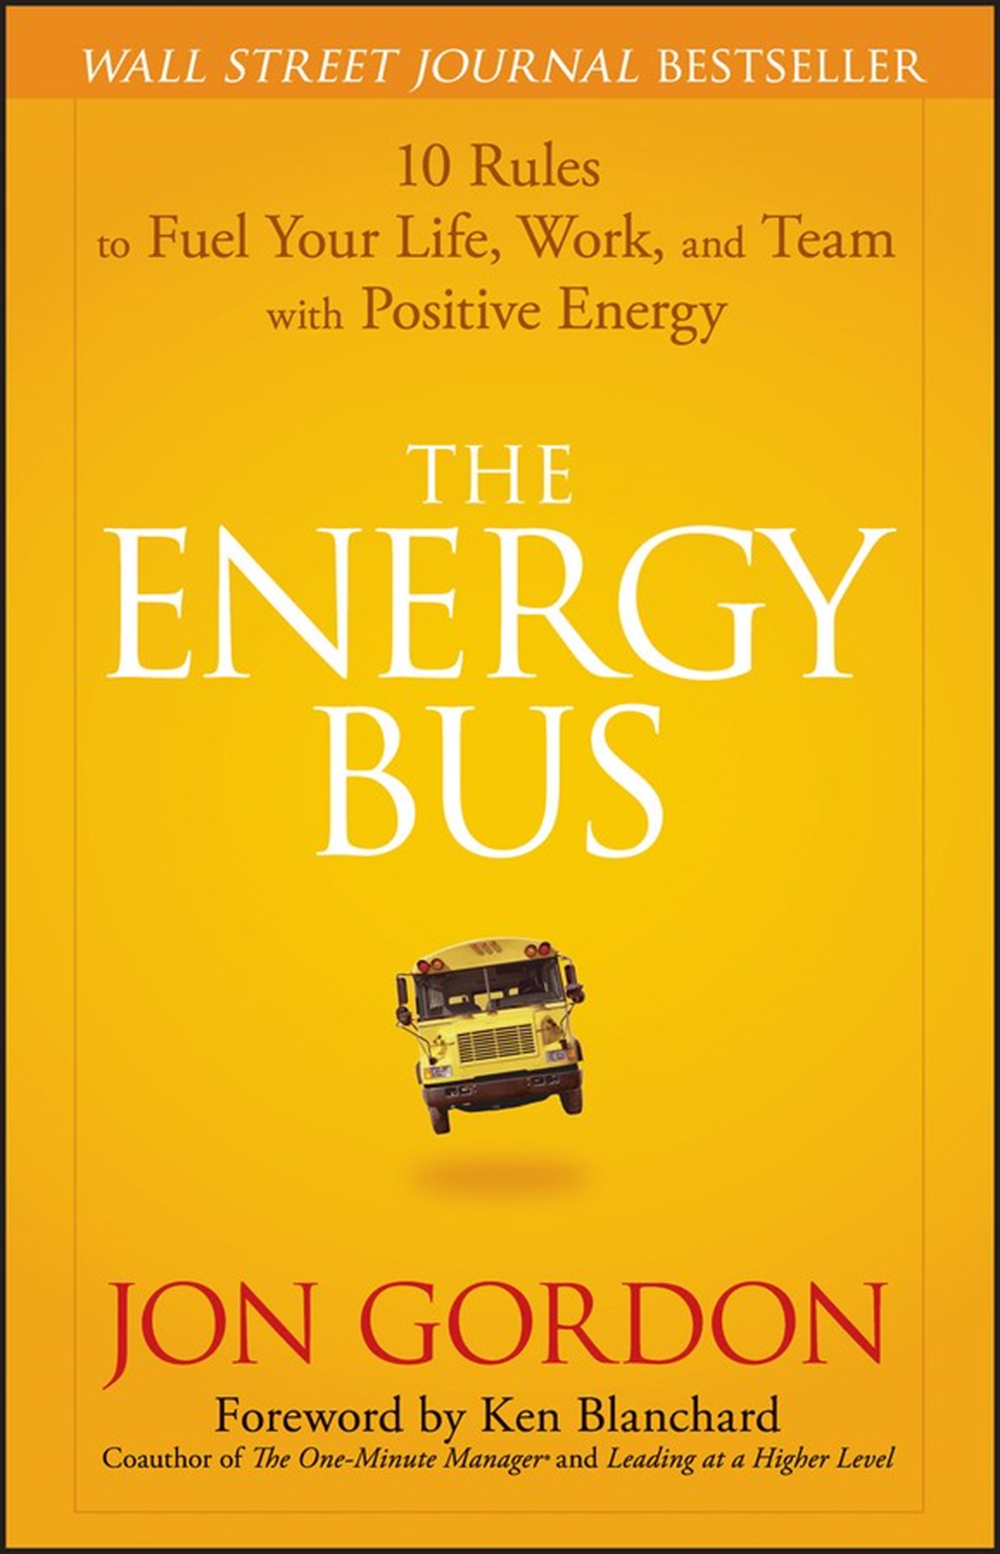 Energy Bus 10 Rules to Fuel Your Life, Work, and Team with Positive Energy